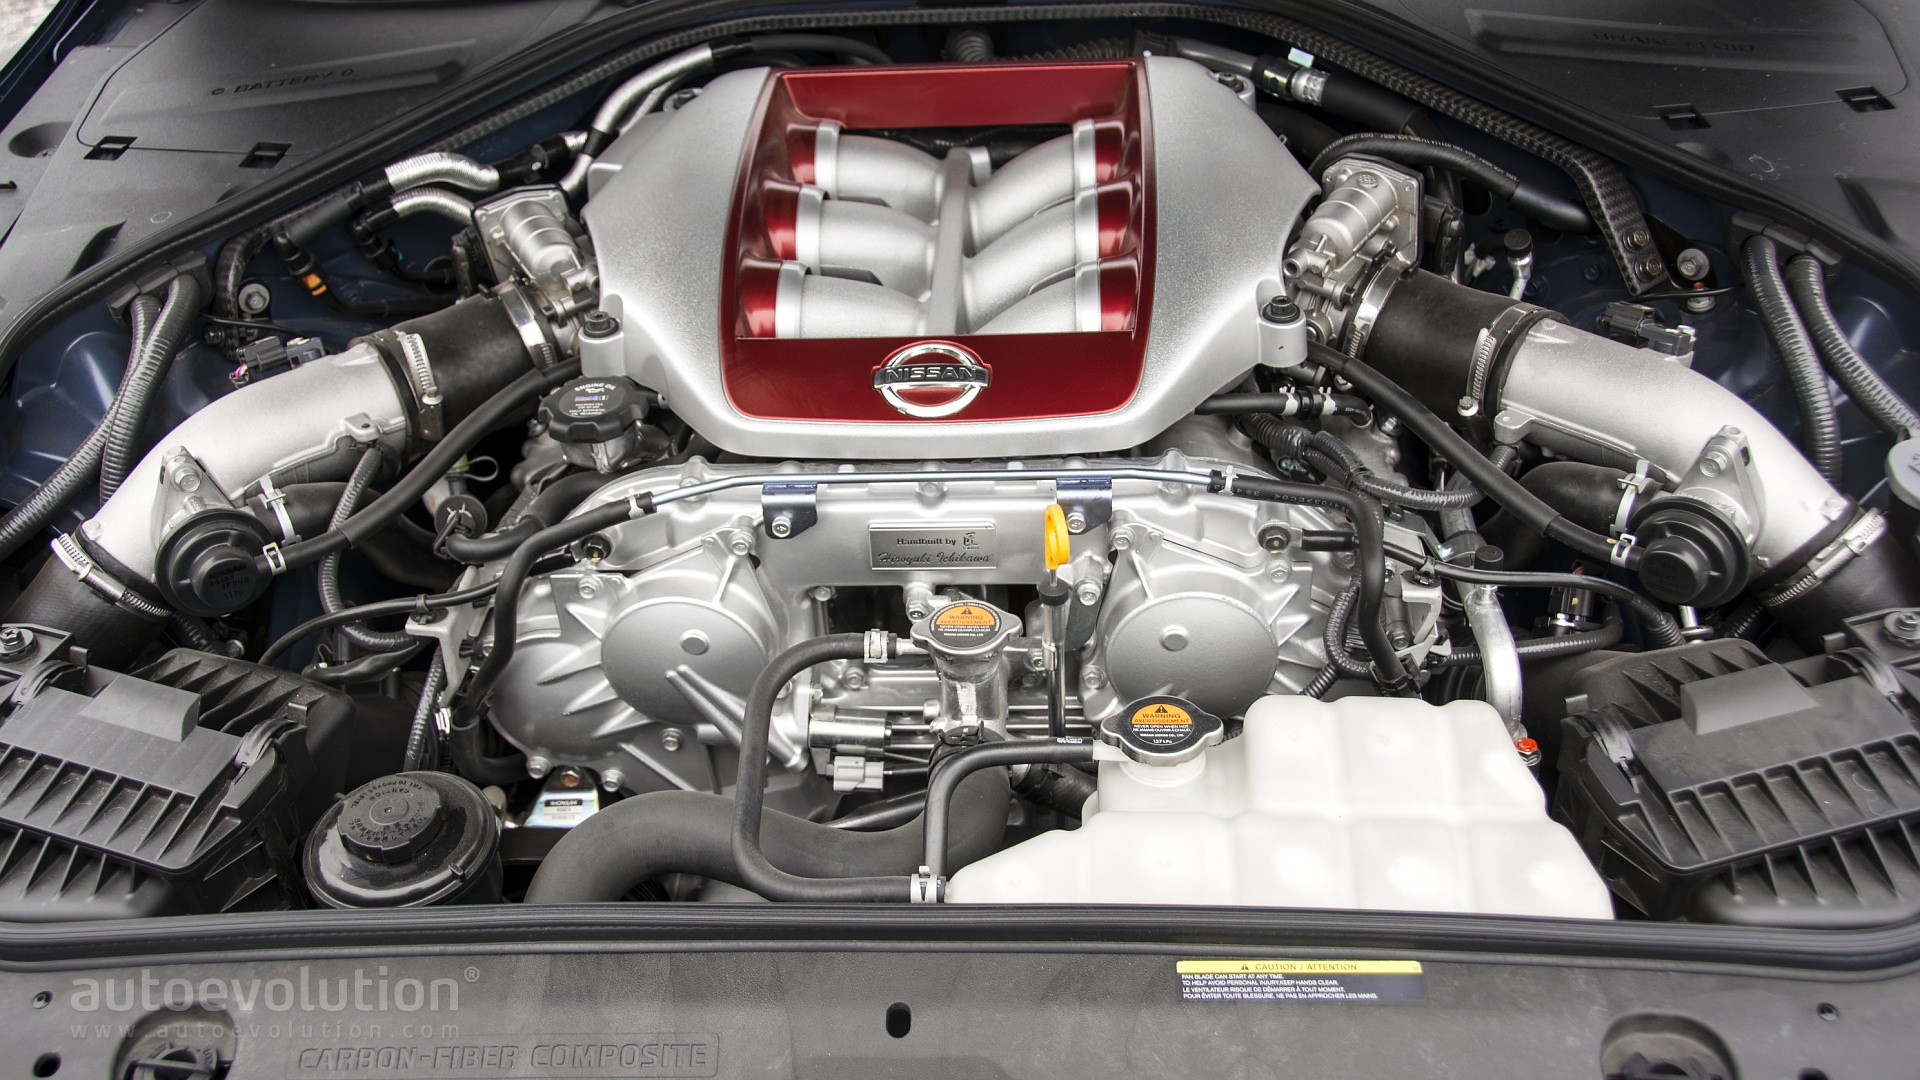 Take A Look About Nissan Gtr Engine for Sale with Amazing Imag...<a href=